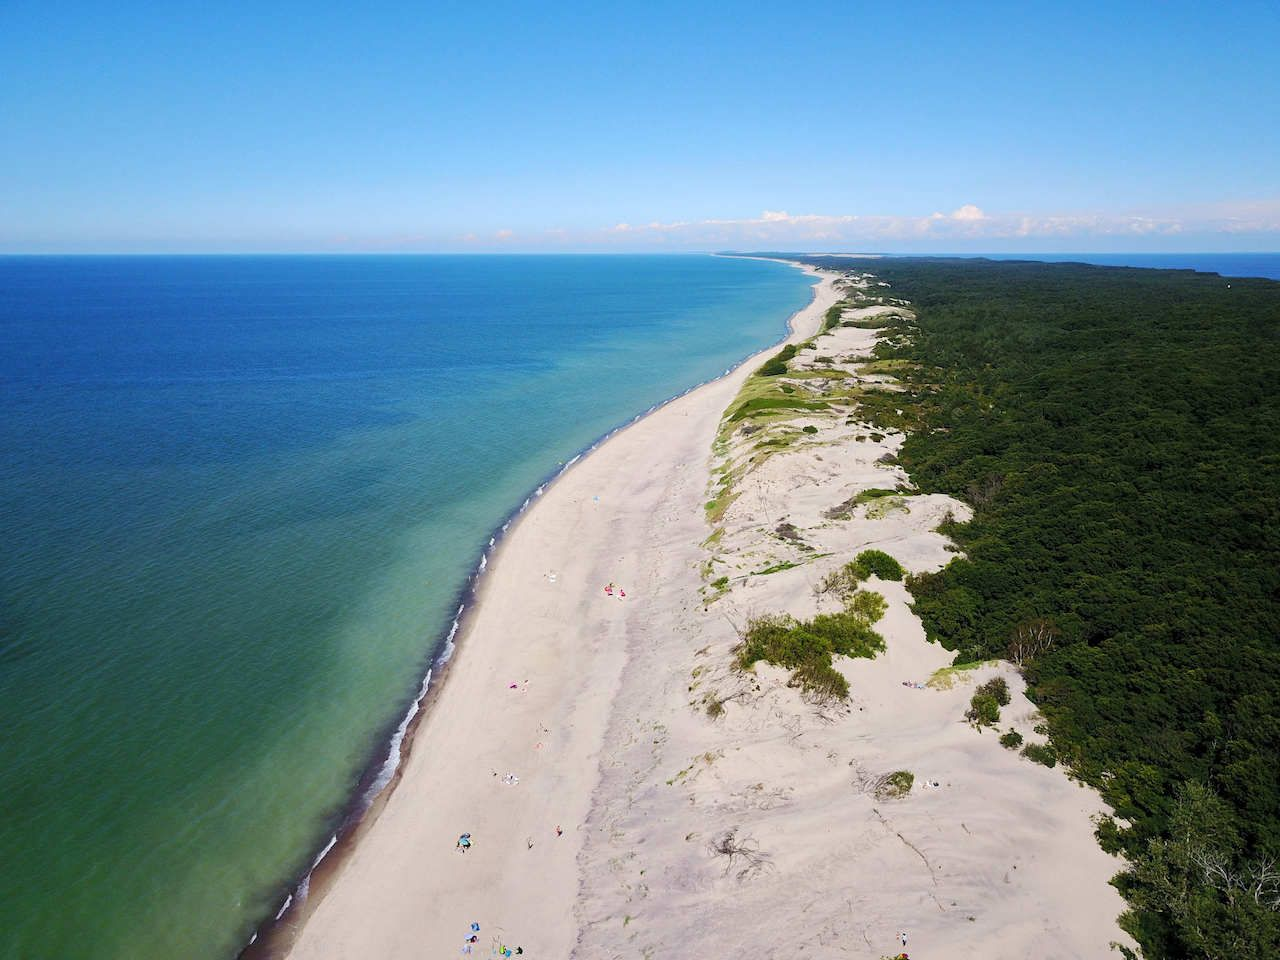 Curonian Spit, Russia